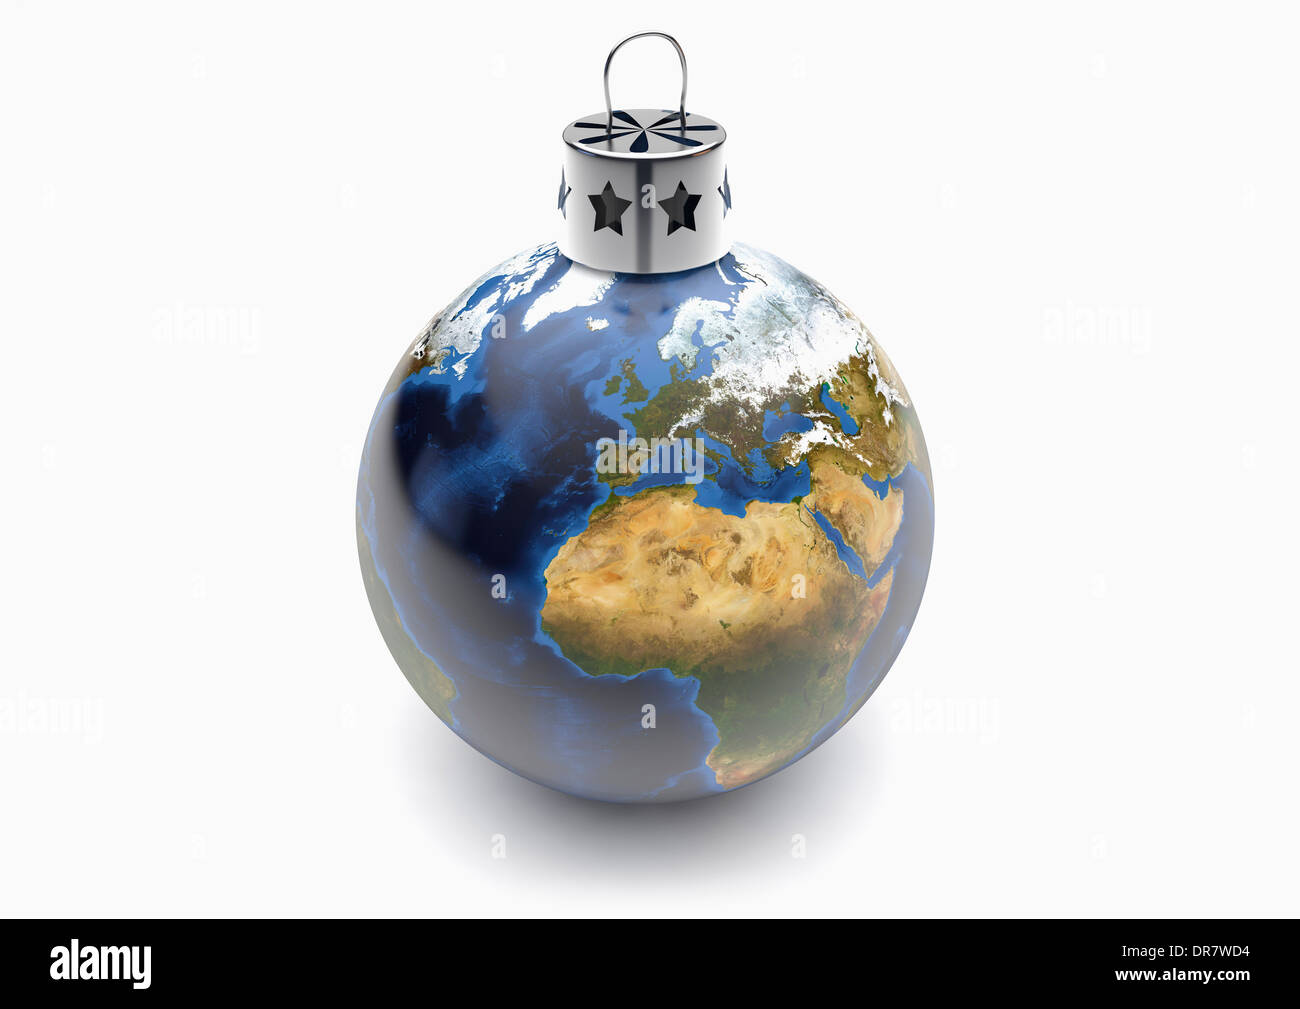 World globe christmas ornaments - Earth Globe Christmas Tree Bauble Decoration Stock Image